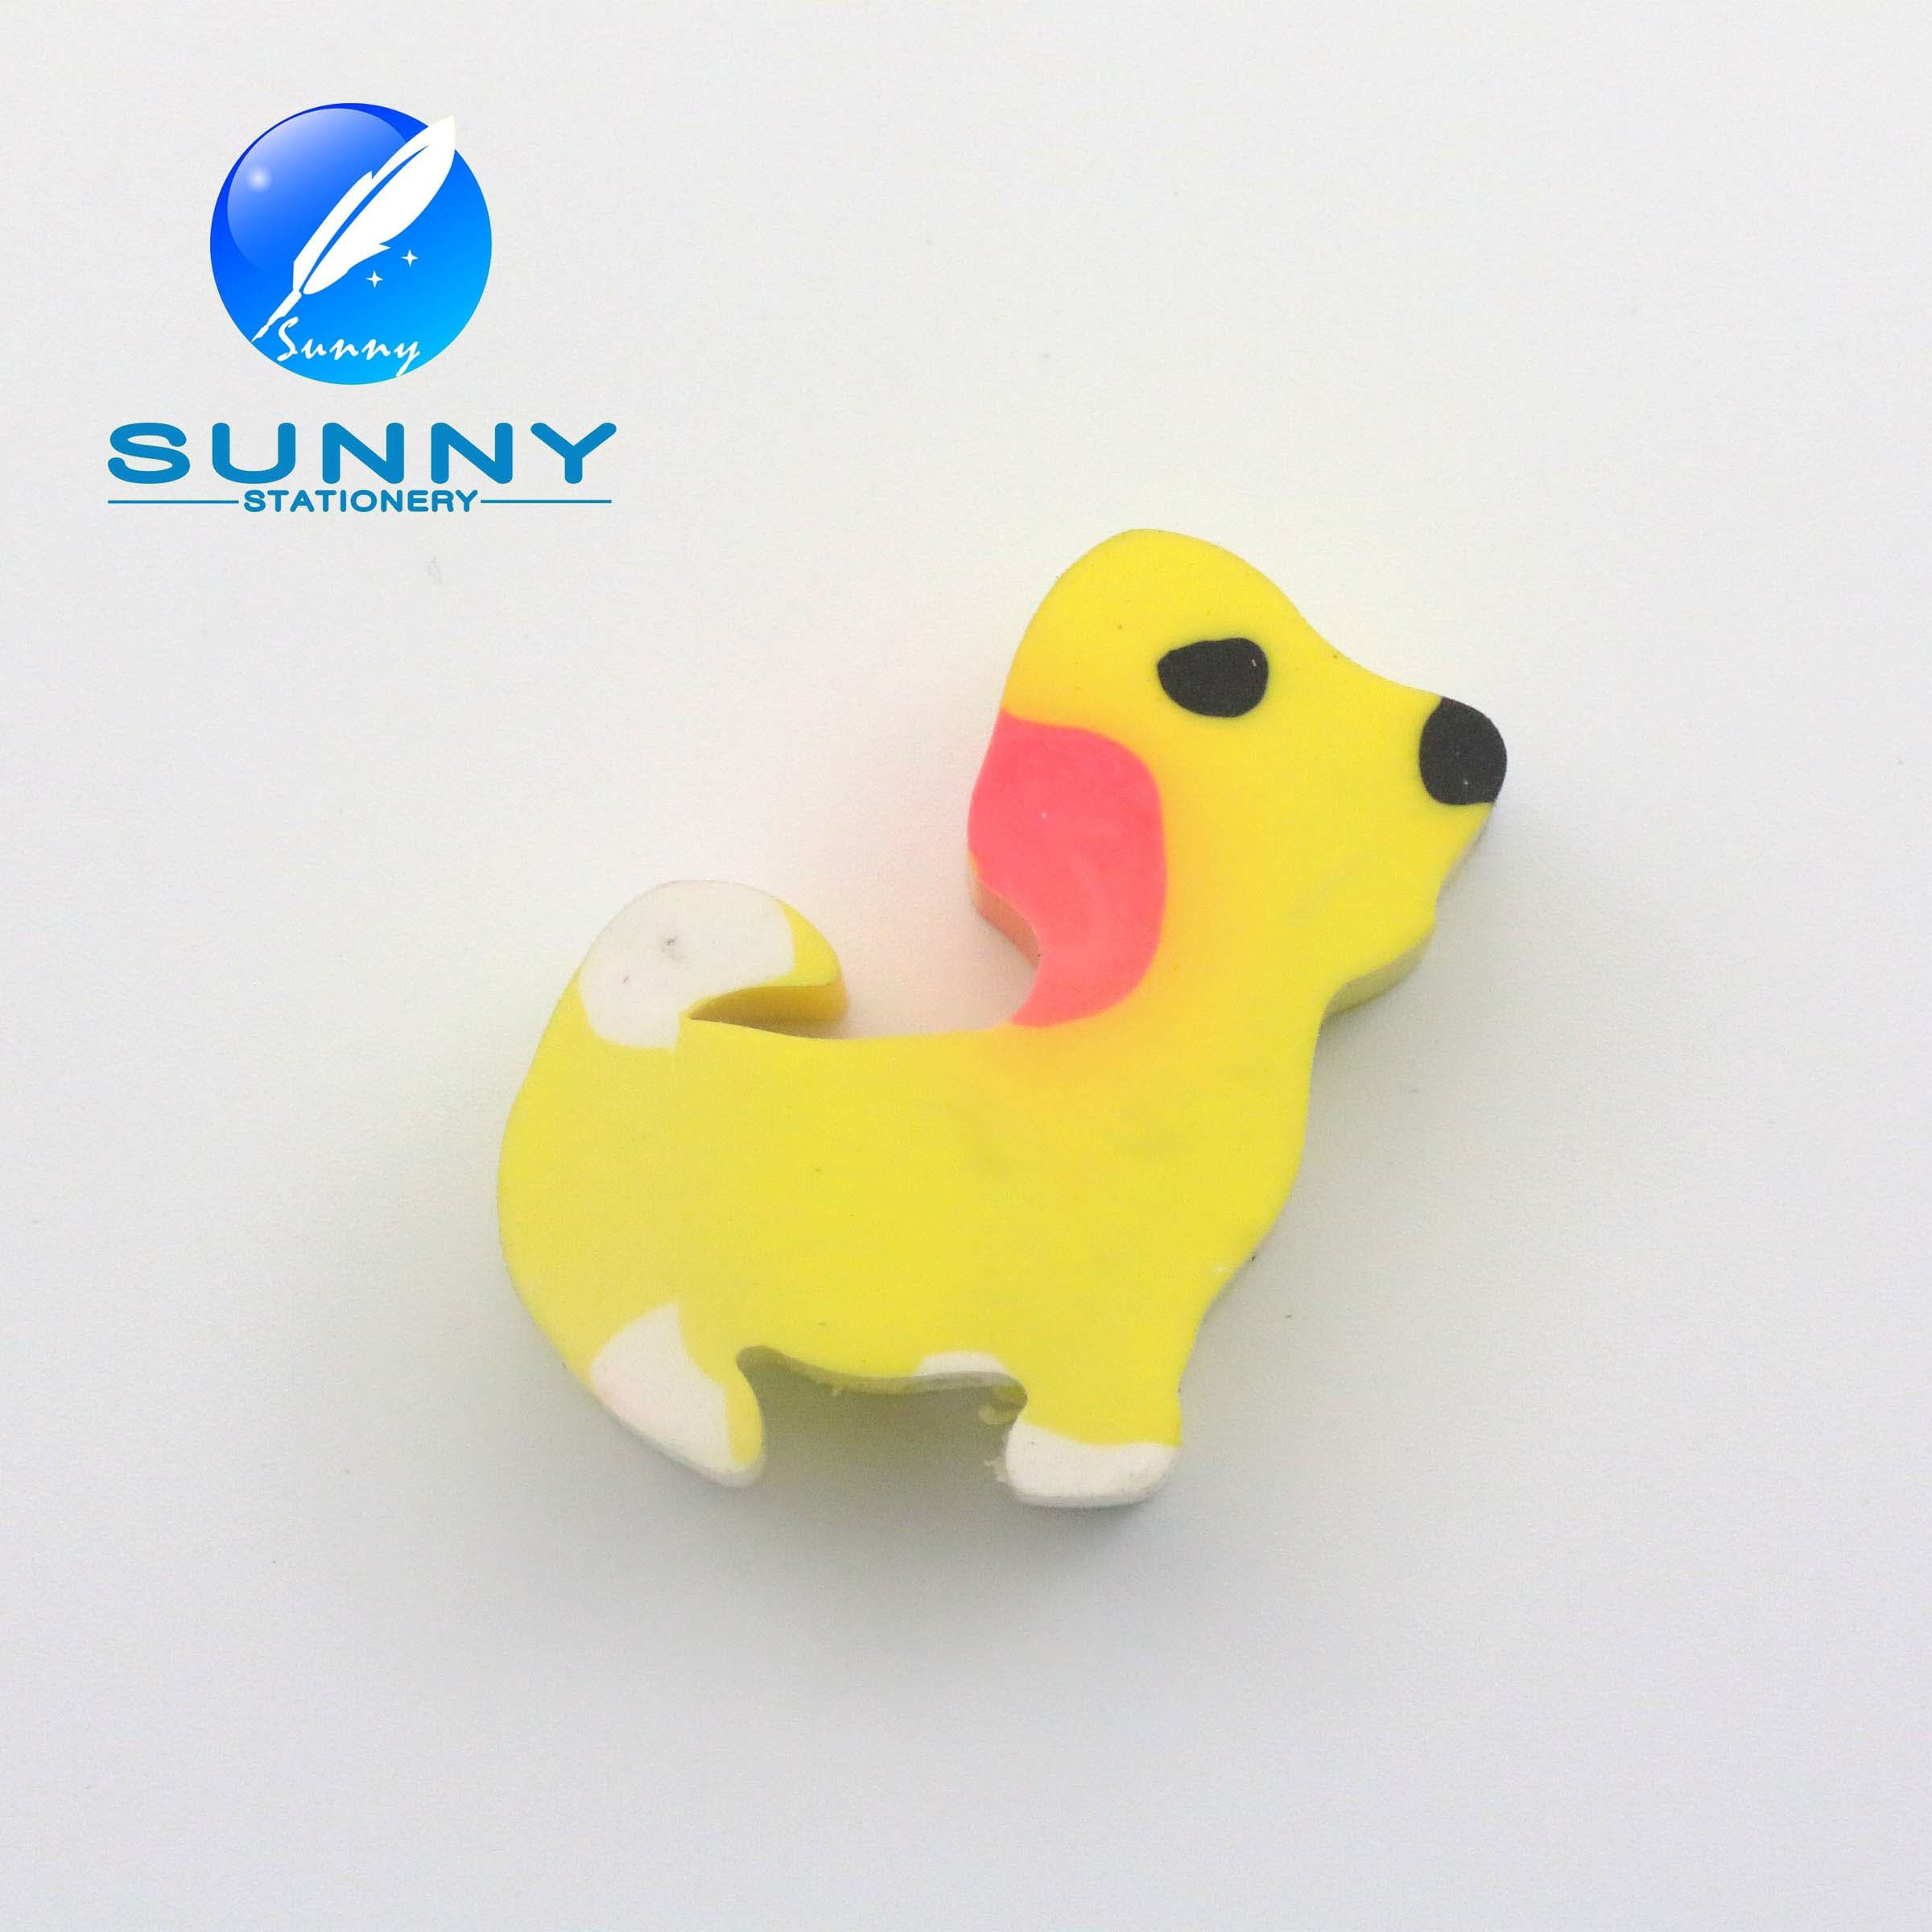 Low Price Promotion Eraser & Dog Shaped Rubber